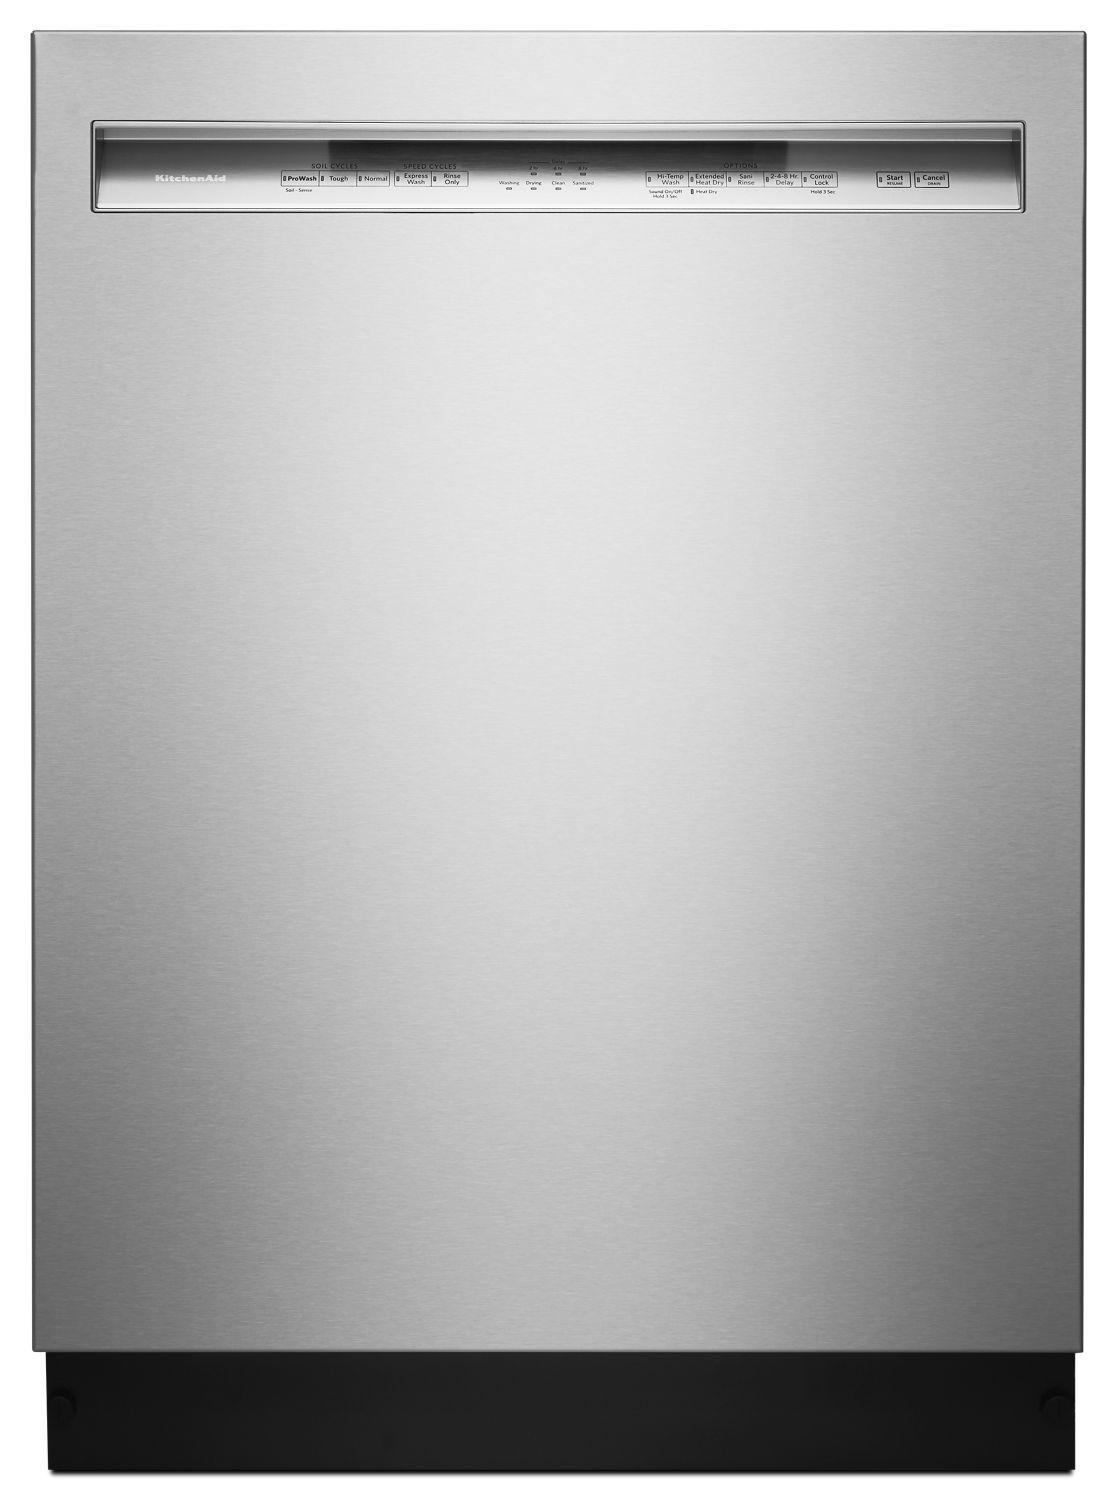 KitchenAid46 Dba Dishwasher With Prowash Cycle And Printshield Finish, Front Control Stainless Steel With Printshield™ Finish